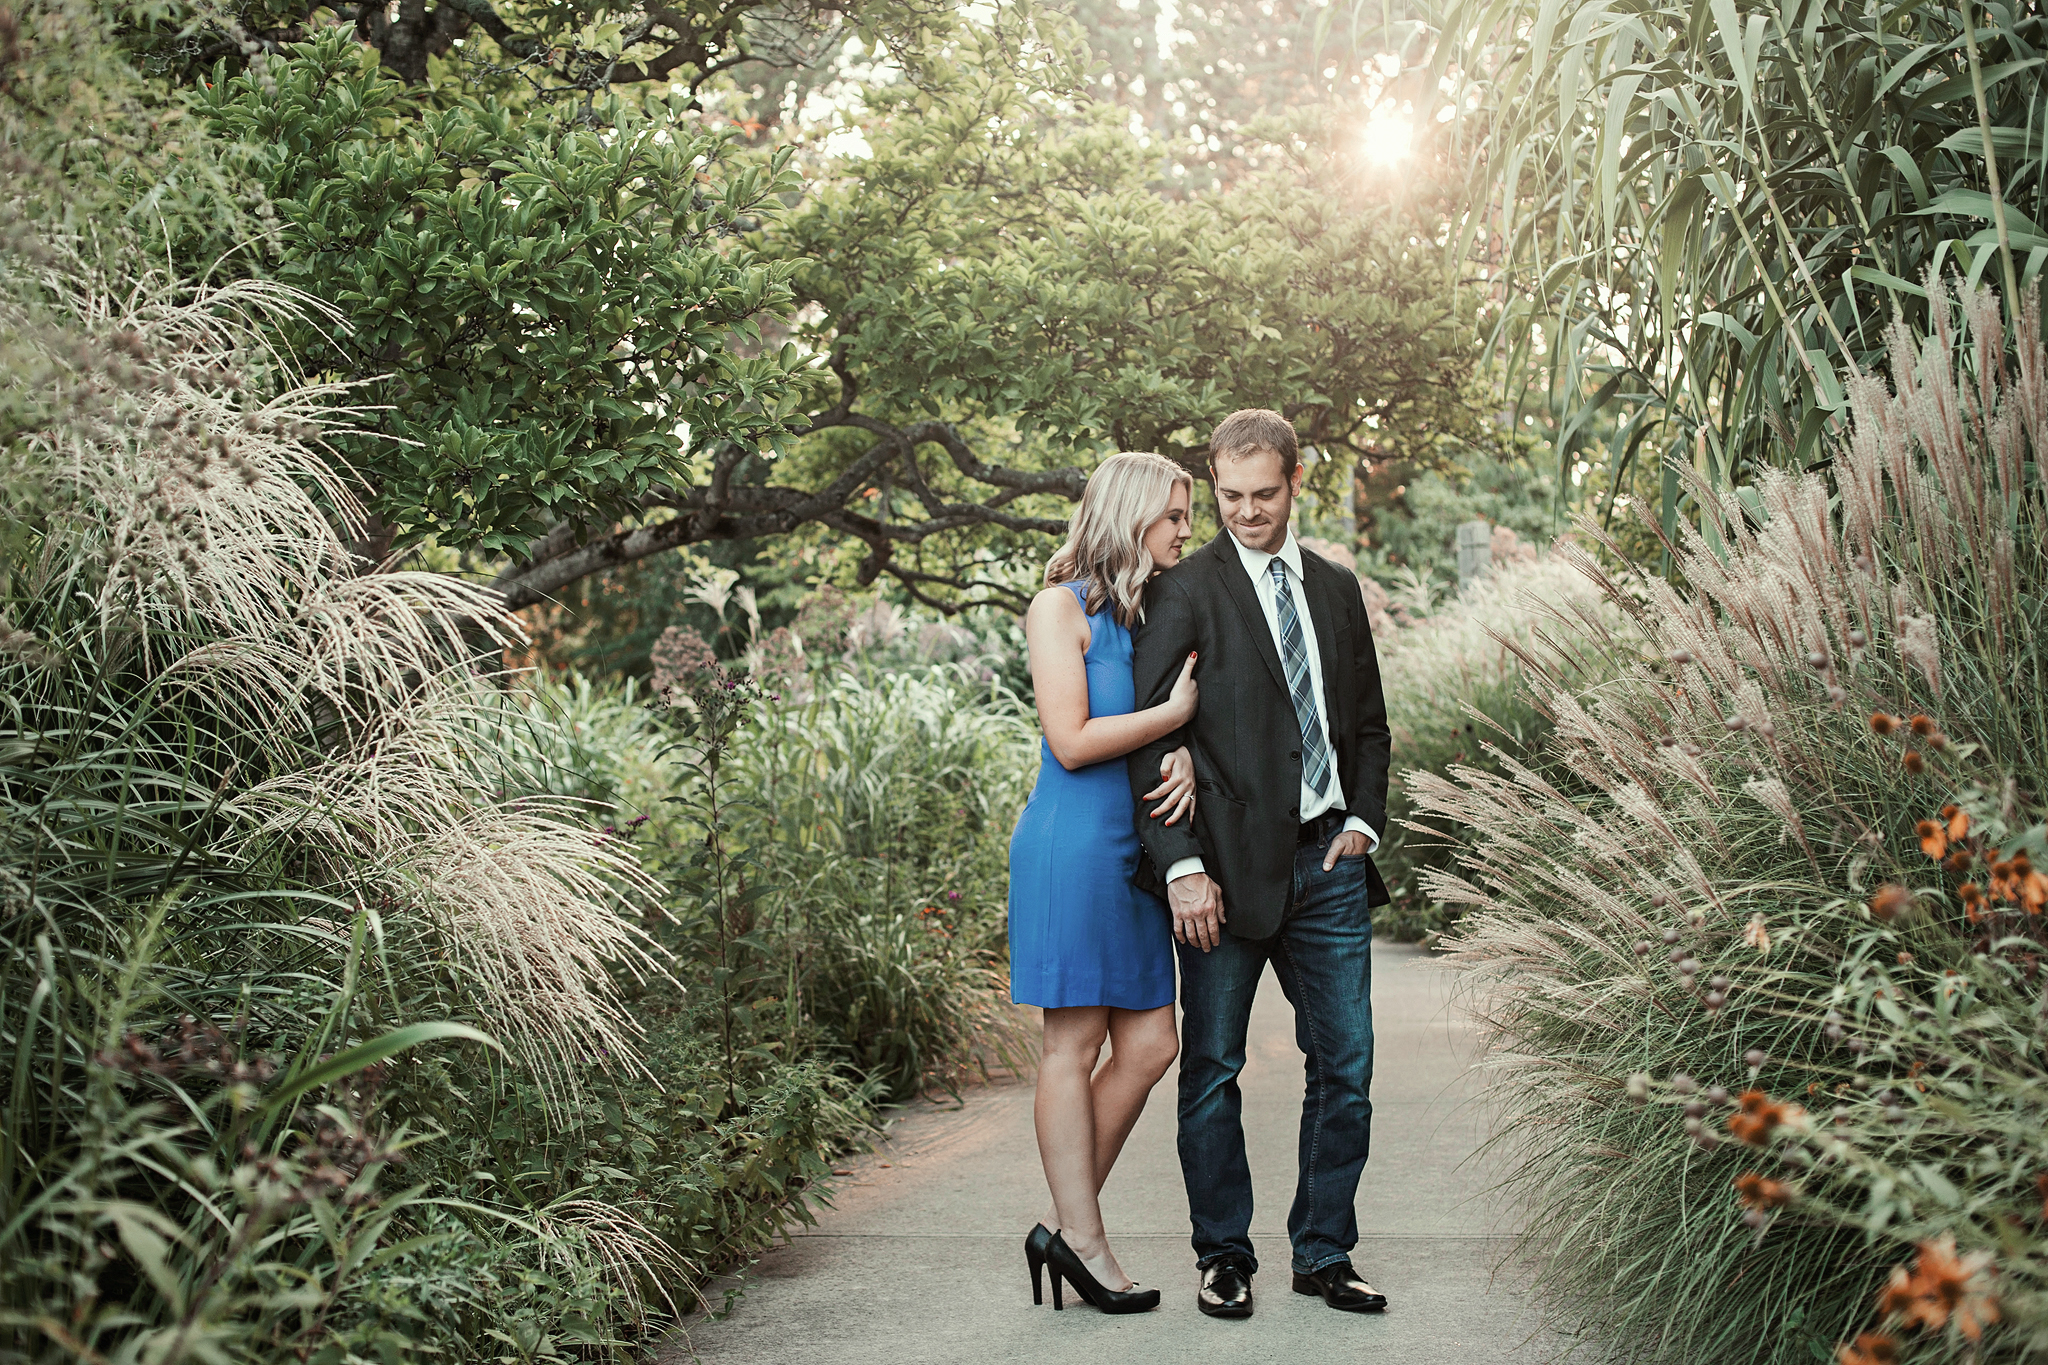 Cincinnati-Dayton-OH-Wedding-Photographer-Engagement-Session-at-Ault-Park-9.jpg